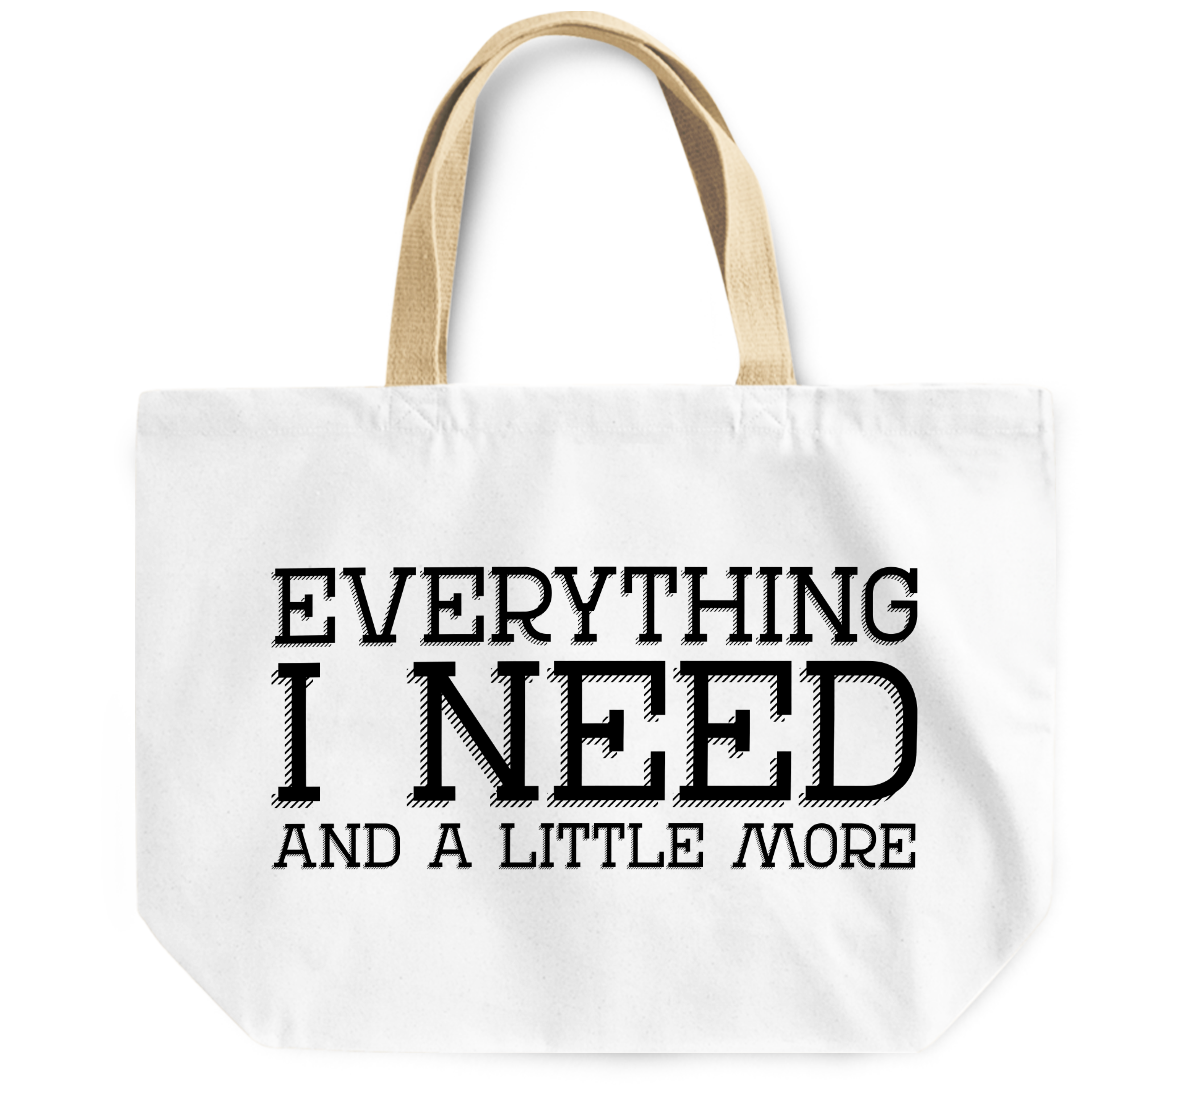 Tote Bag Every thing i need and a little more By Loud Universe